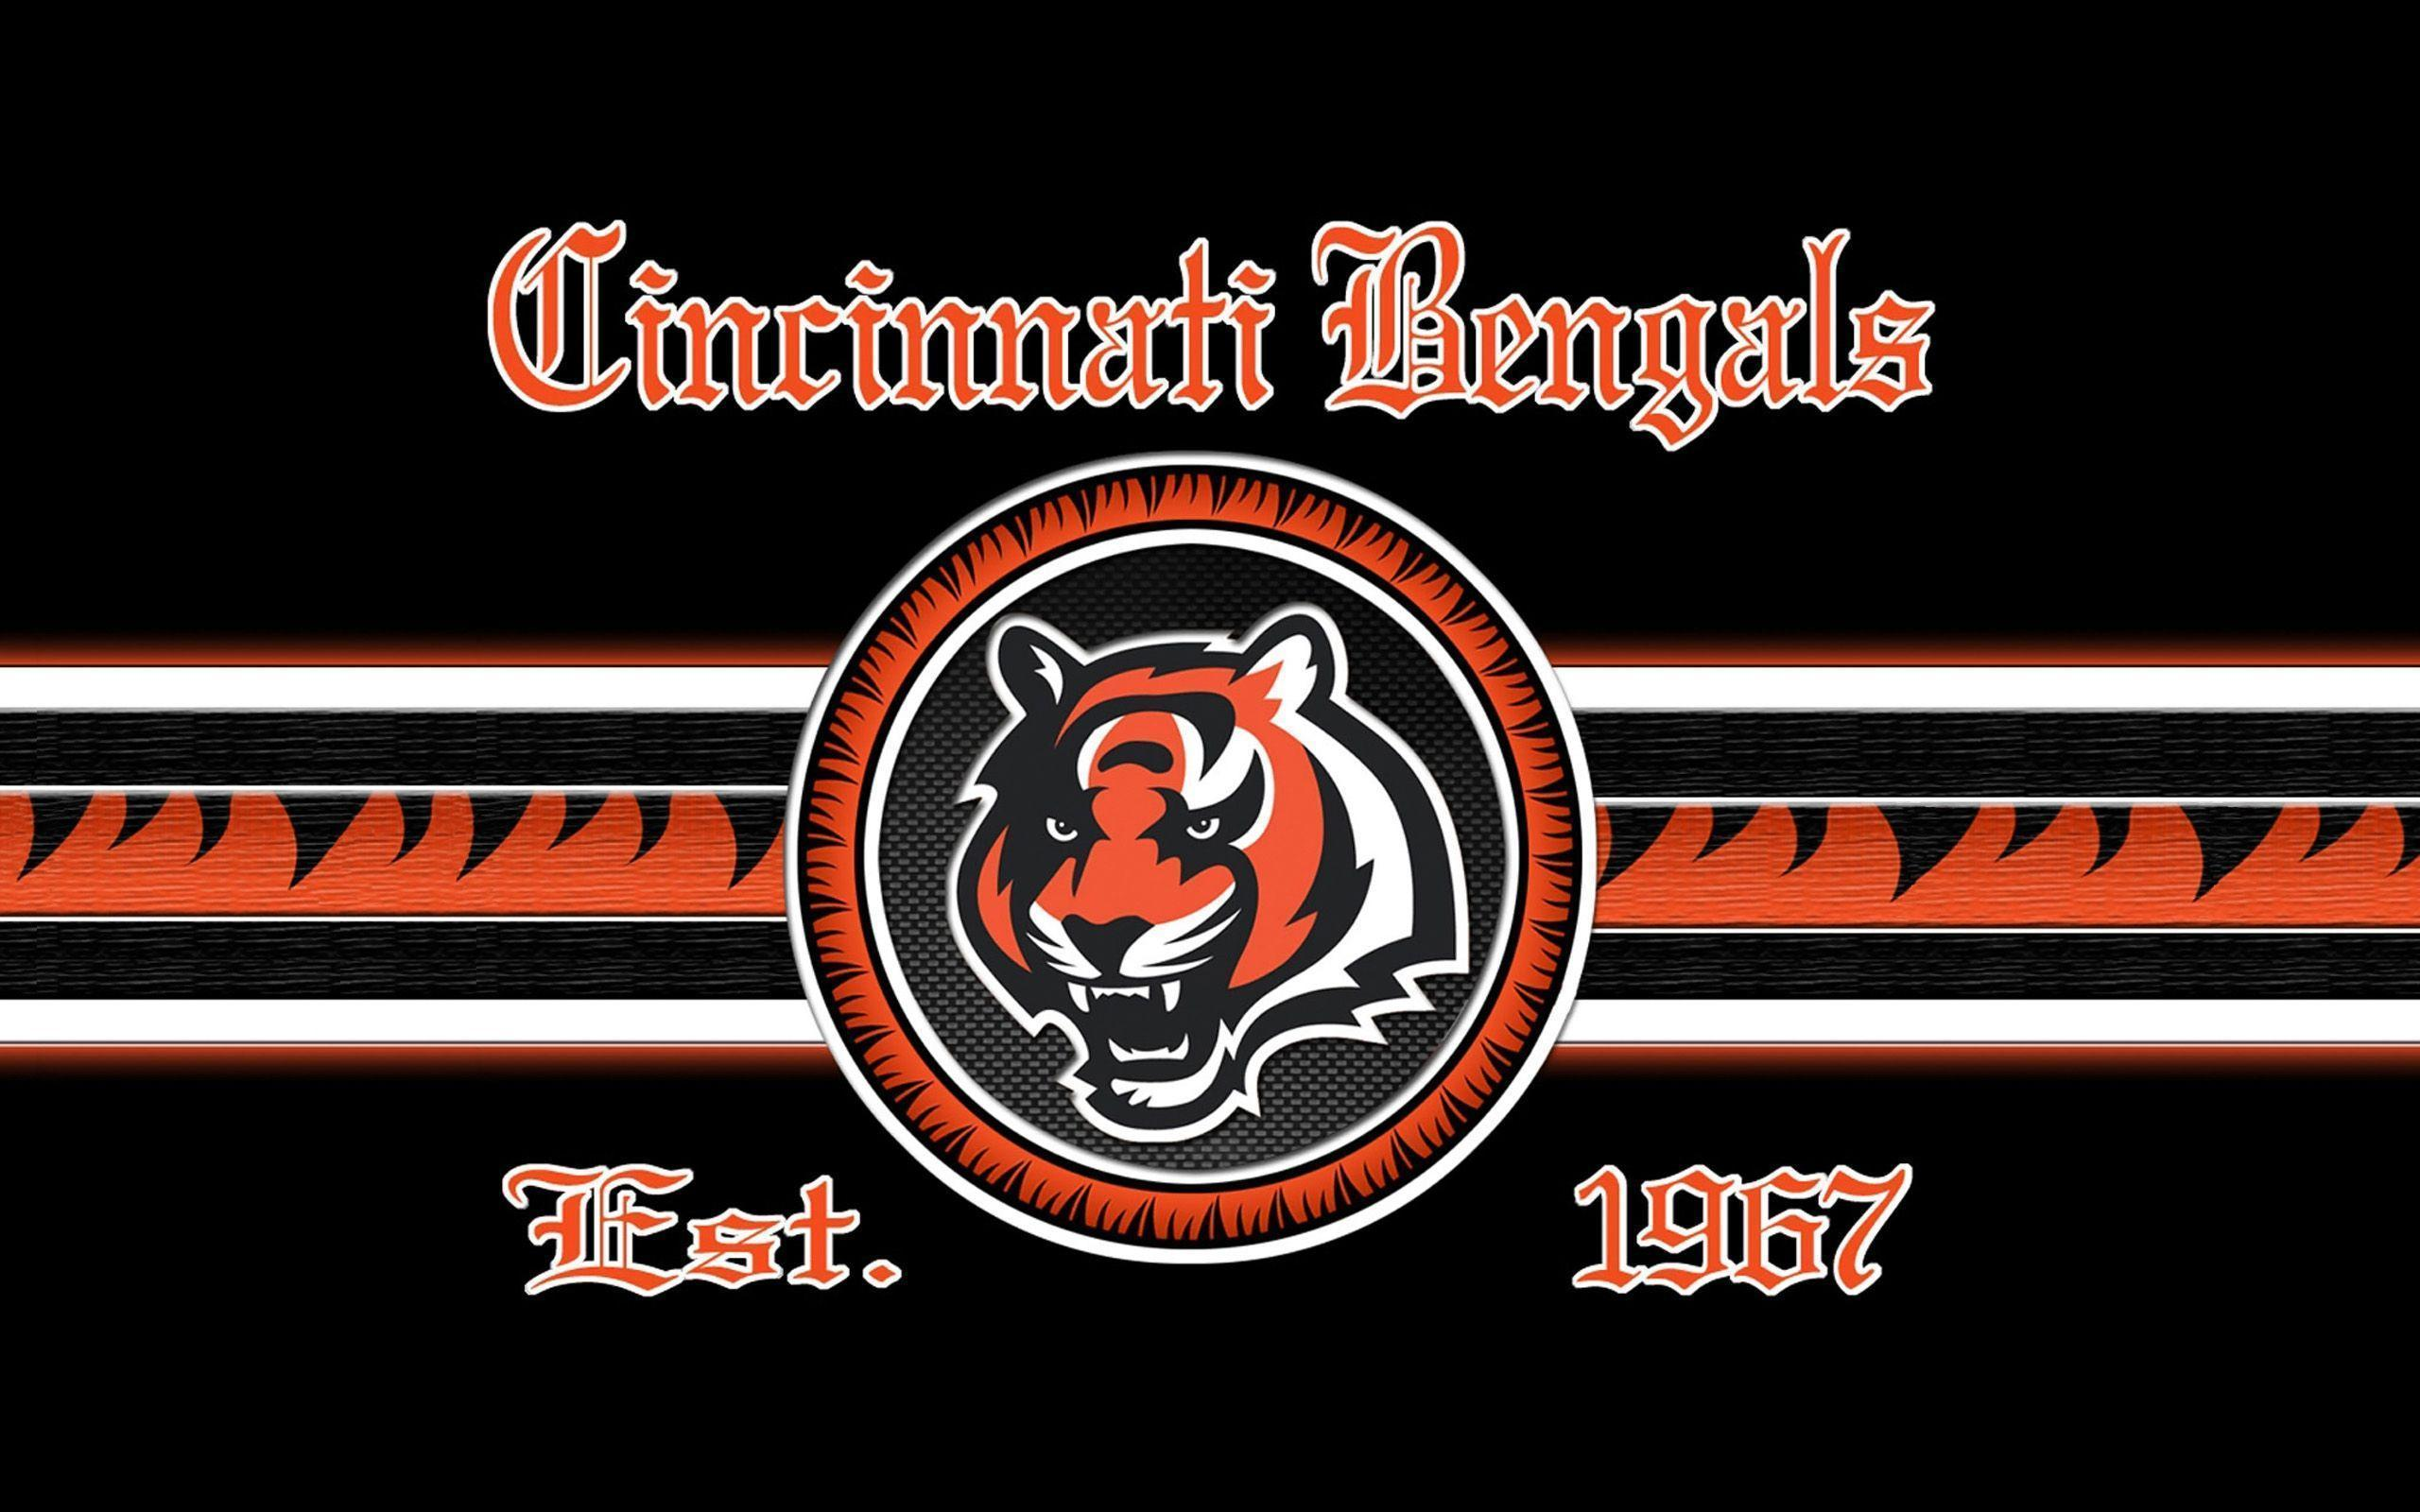 2014 Cincinnati Bengals NFL Logo Wallpaper Wide or HD | Sports ...